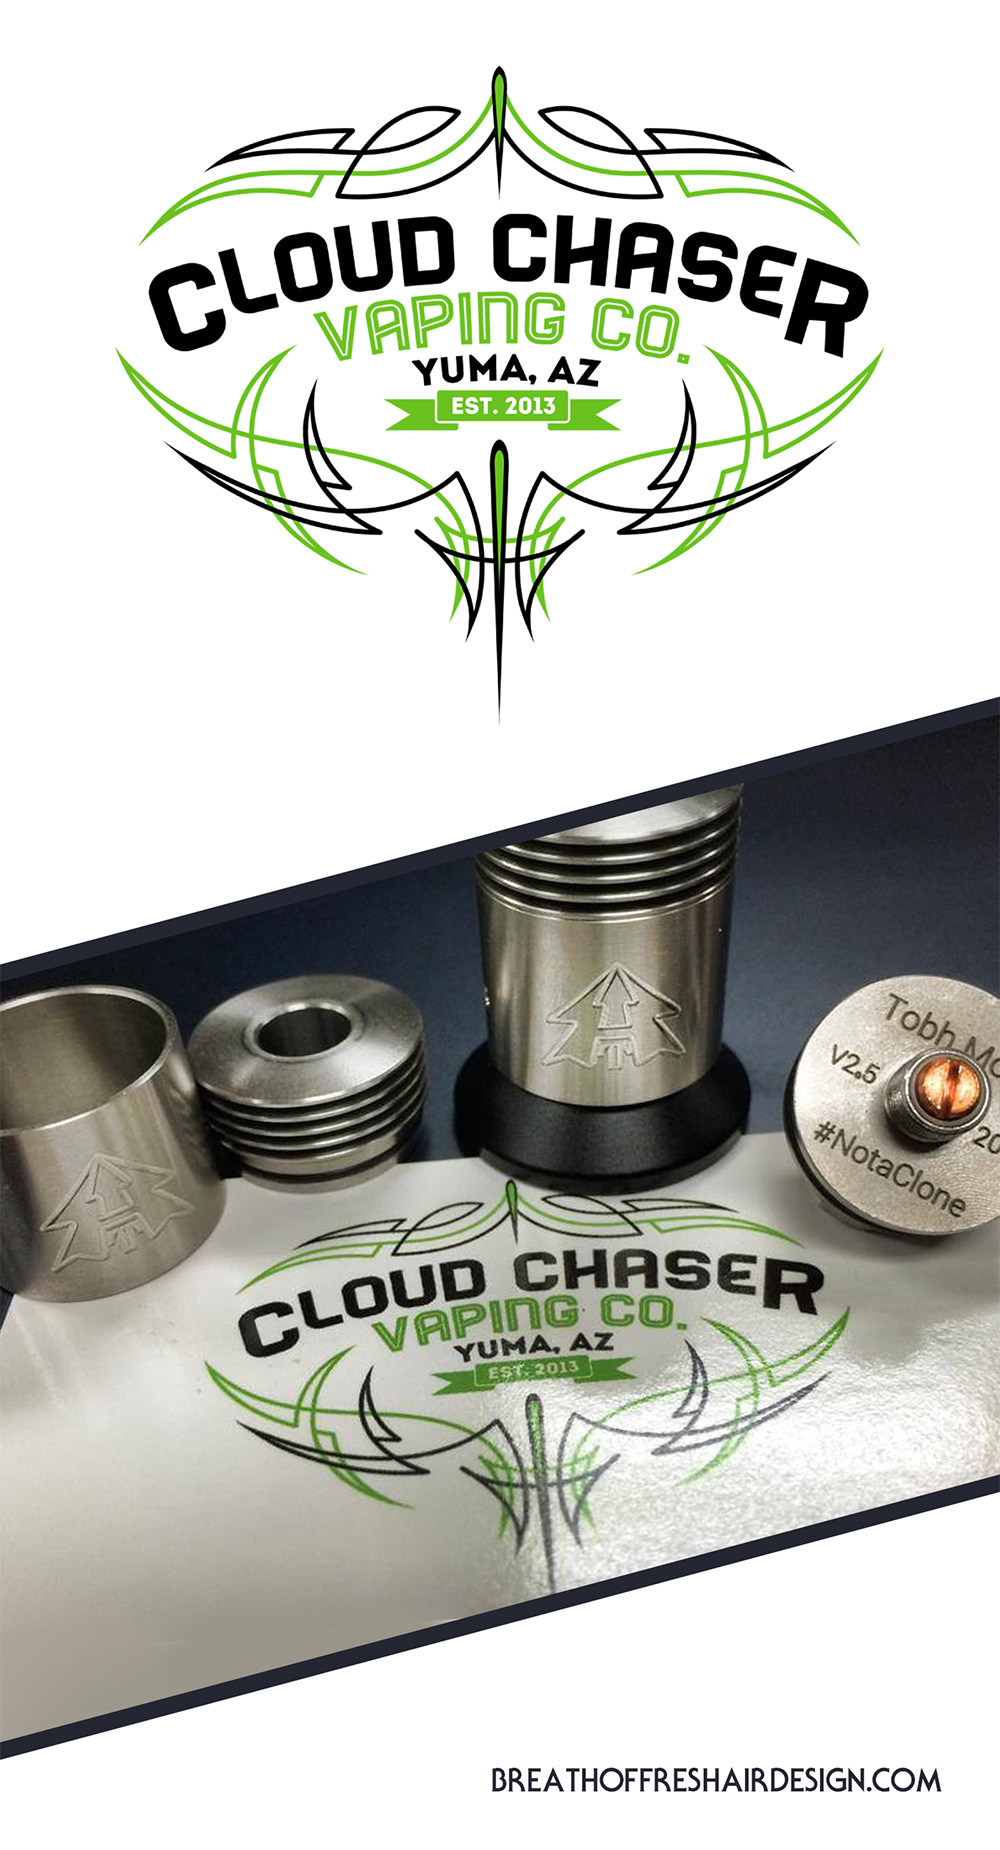 Cloud Chaser, Vape, Graphic Design, Logo Design, Vaping, Pinstriping, Smoking, Weed, Medicinal